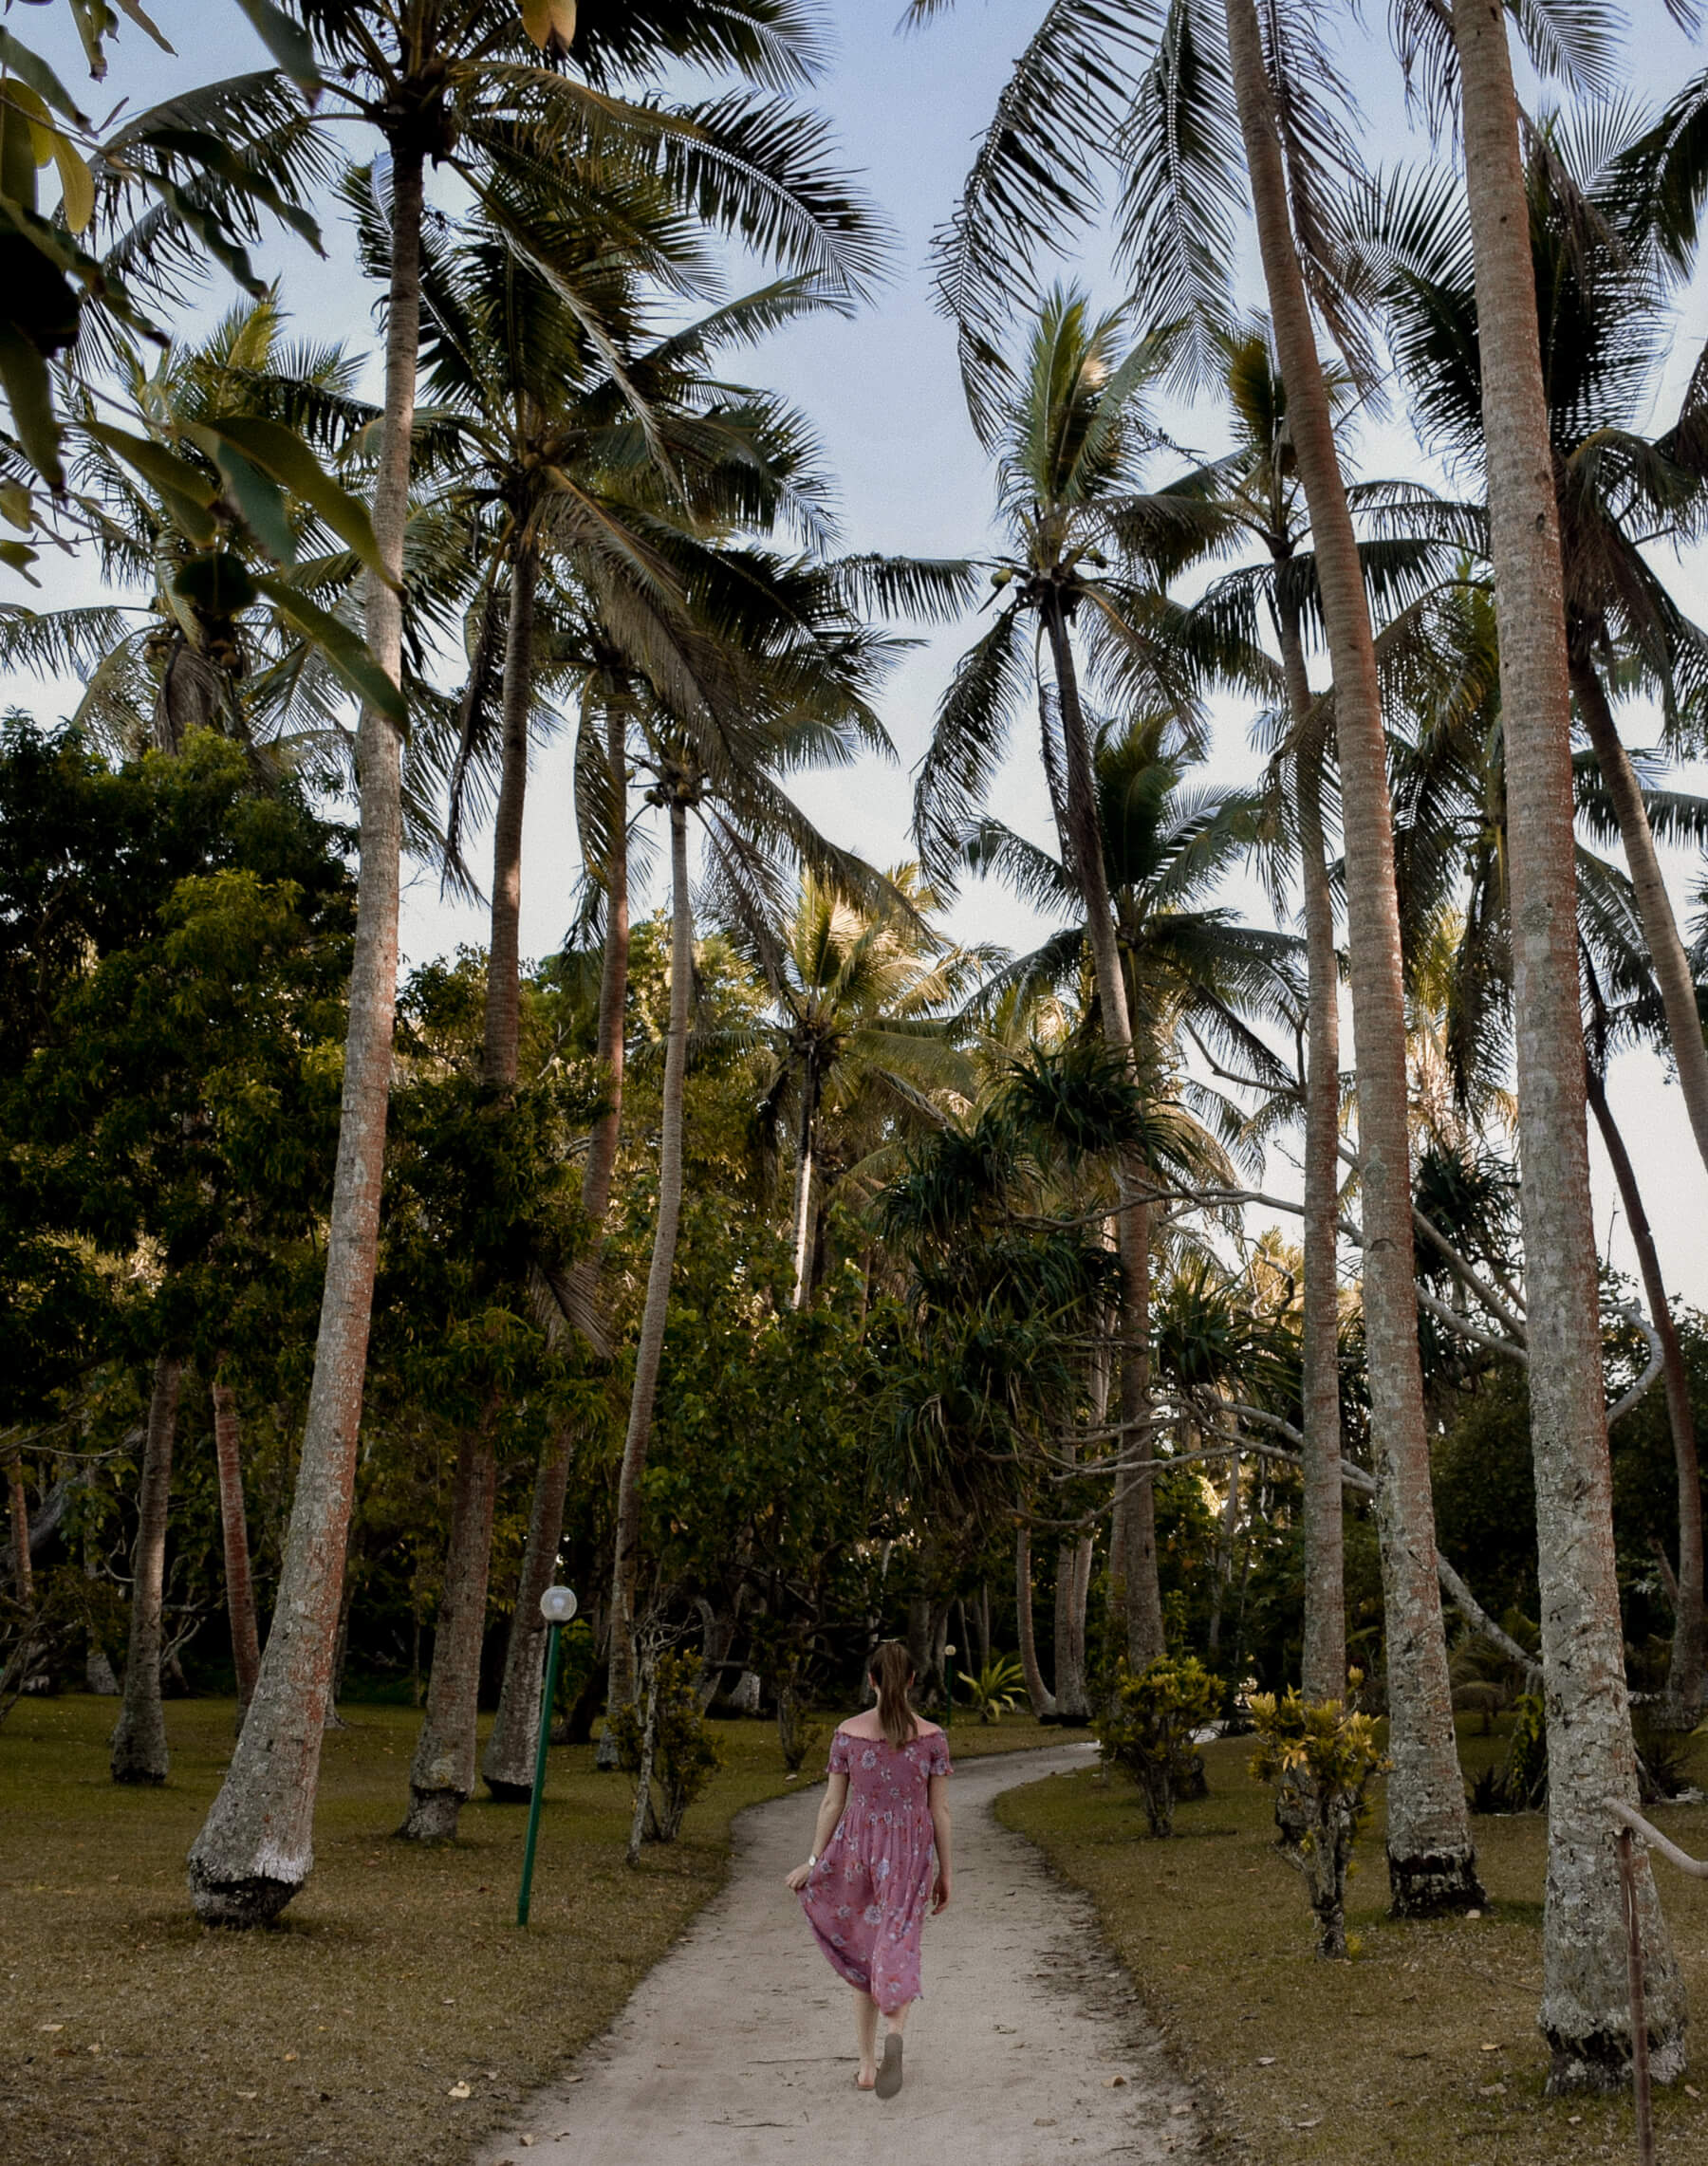 A girl in a pink flow dress walking away from the camera through a line of tall palm trees